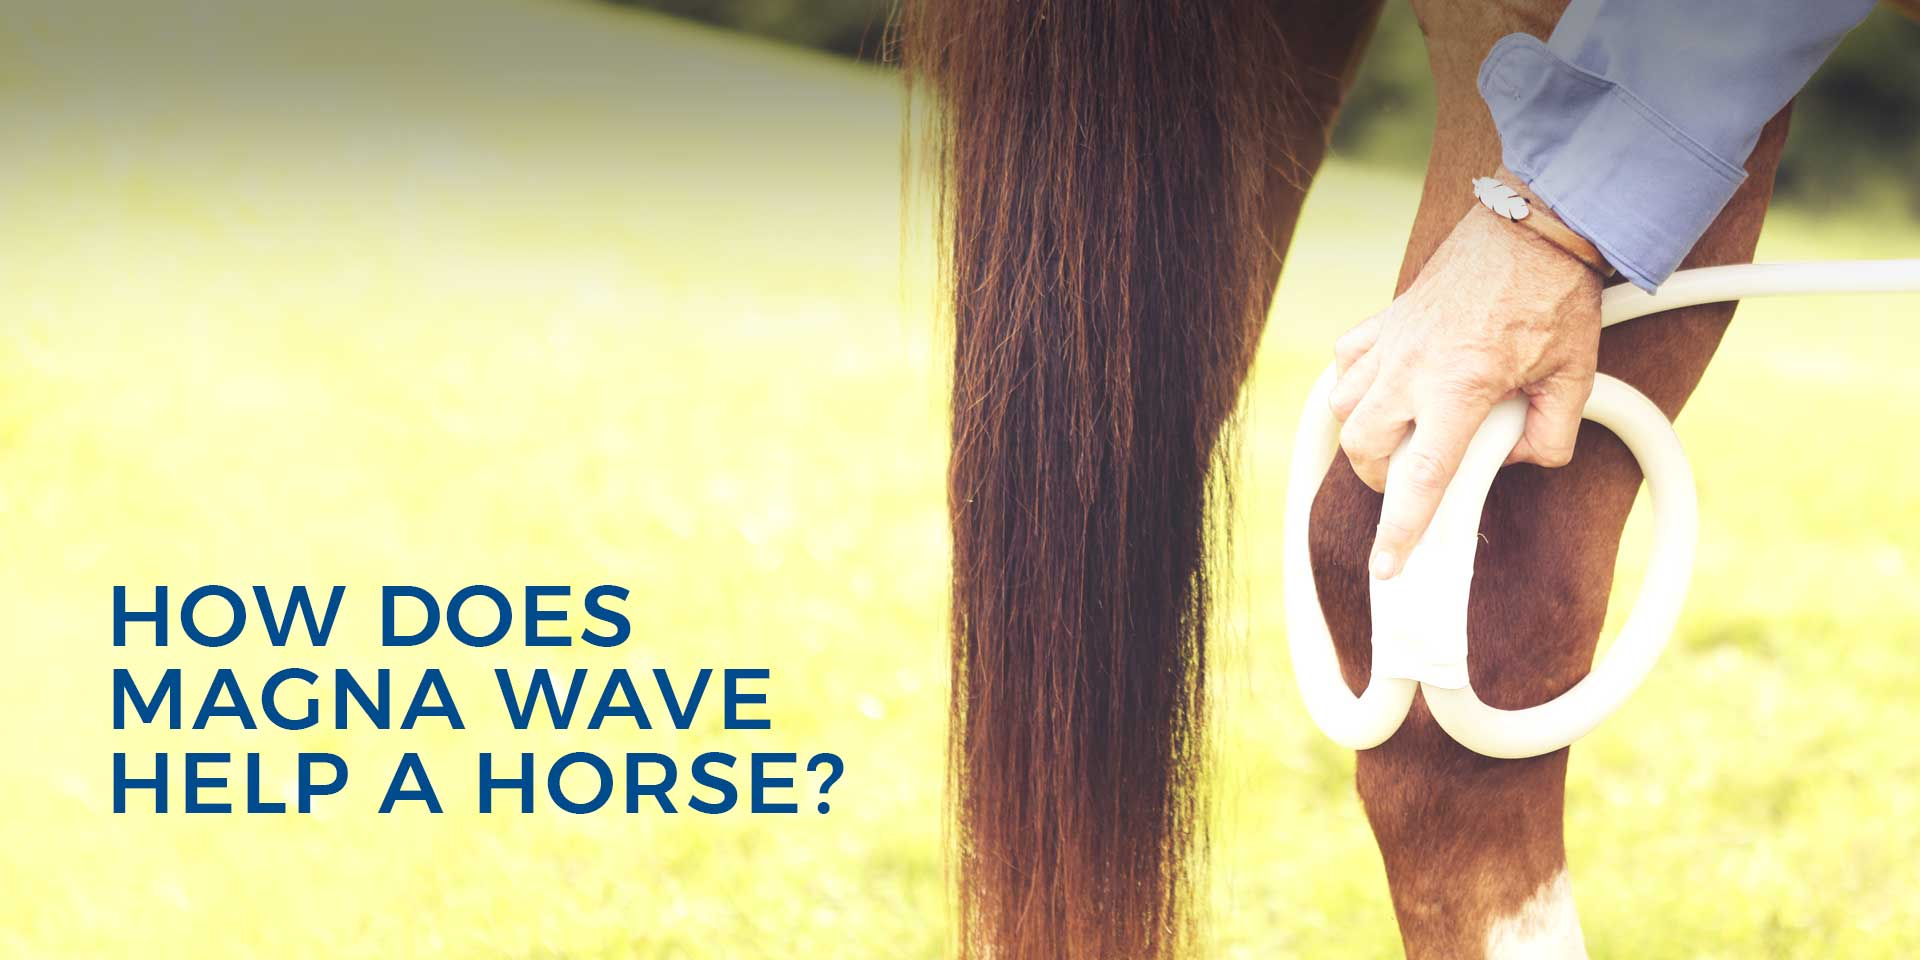 How Does Magna Wave Help a Horse?